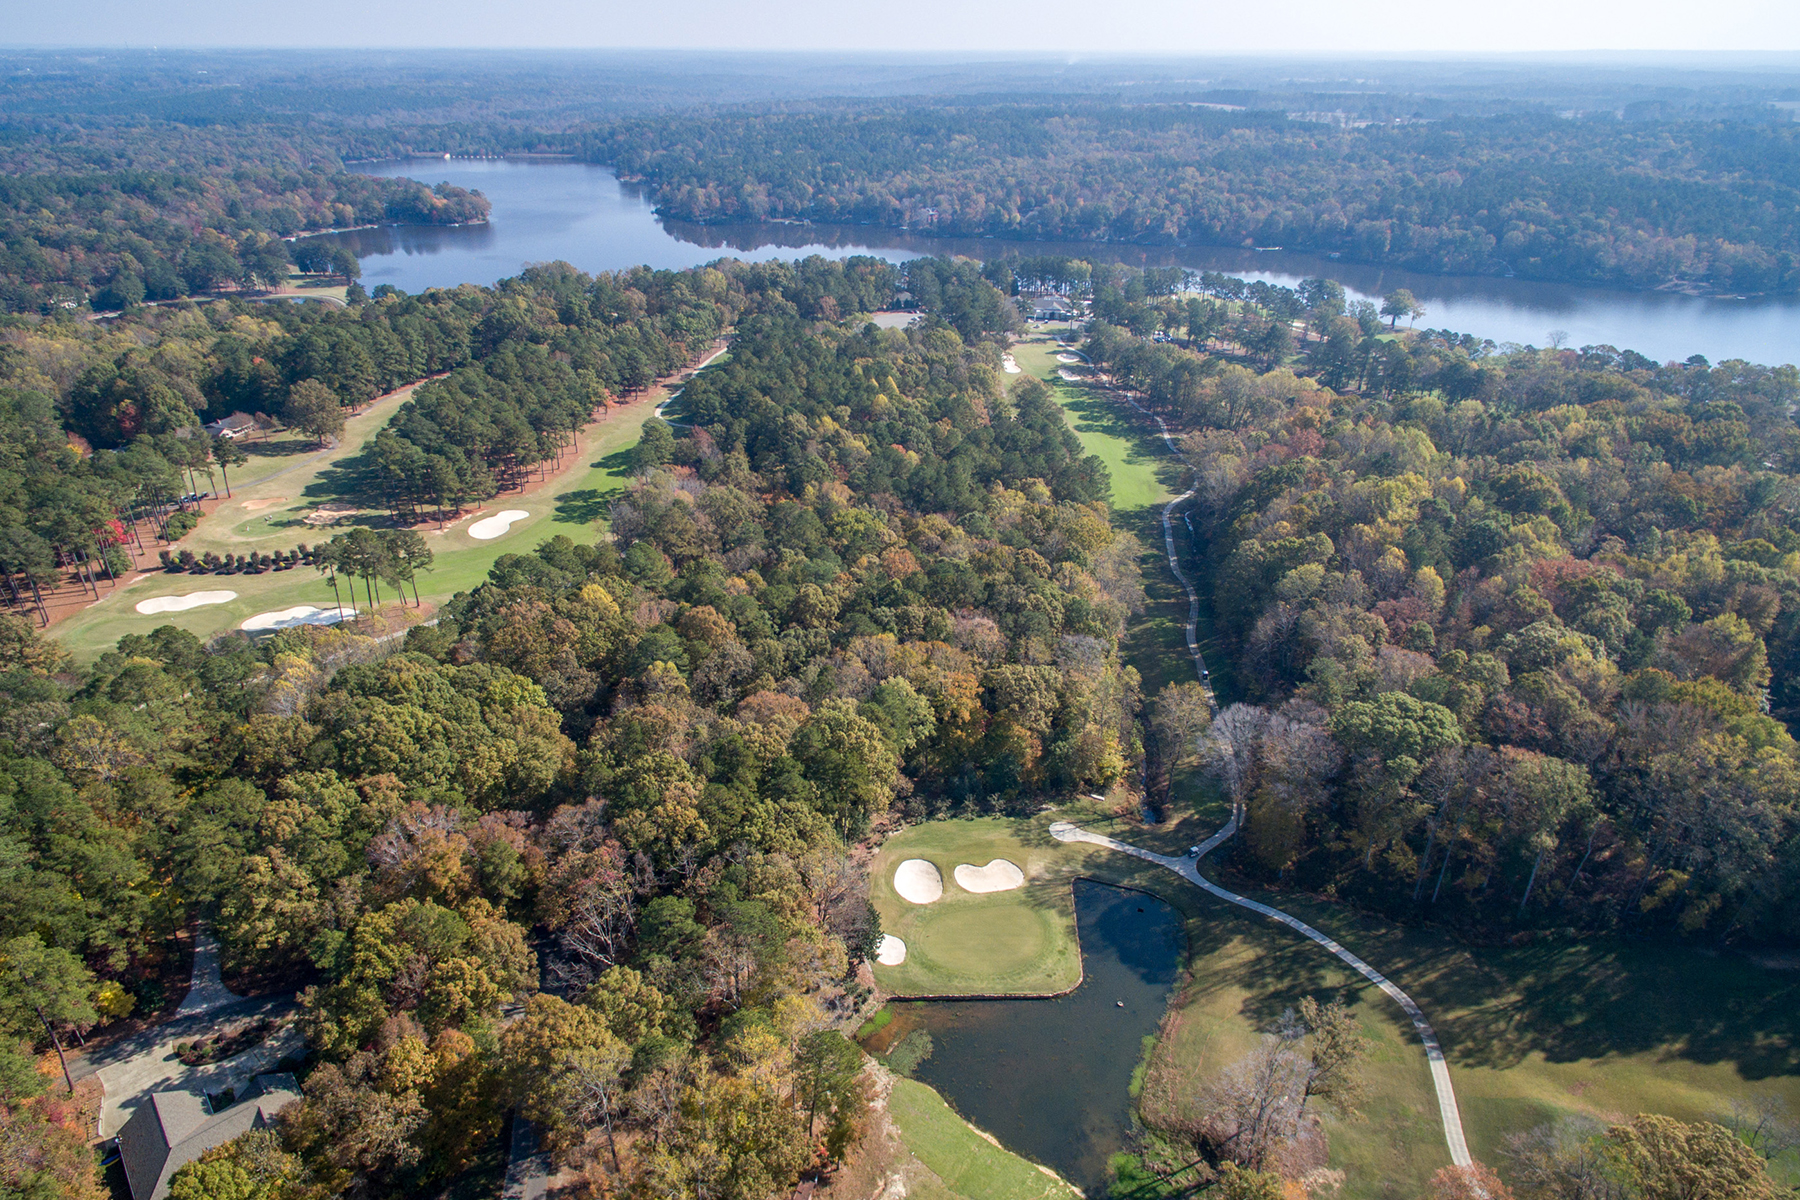 Land for Sale at 18 ACRES IN CAROLINA TRACE 9999 Country Club Dr, Sanford, North Carolina 27332 United States